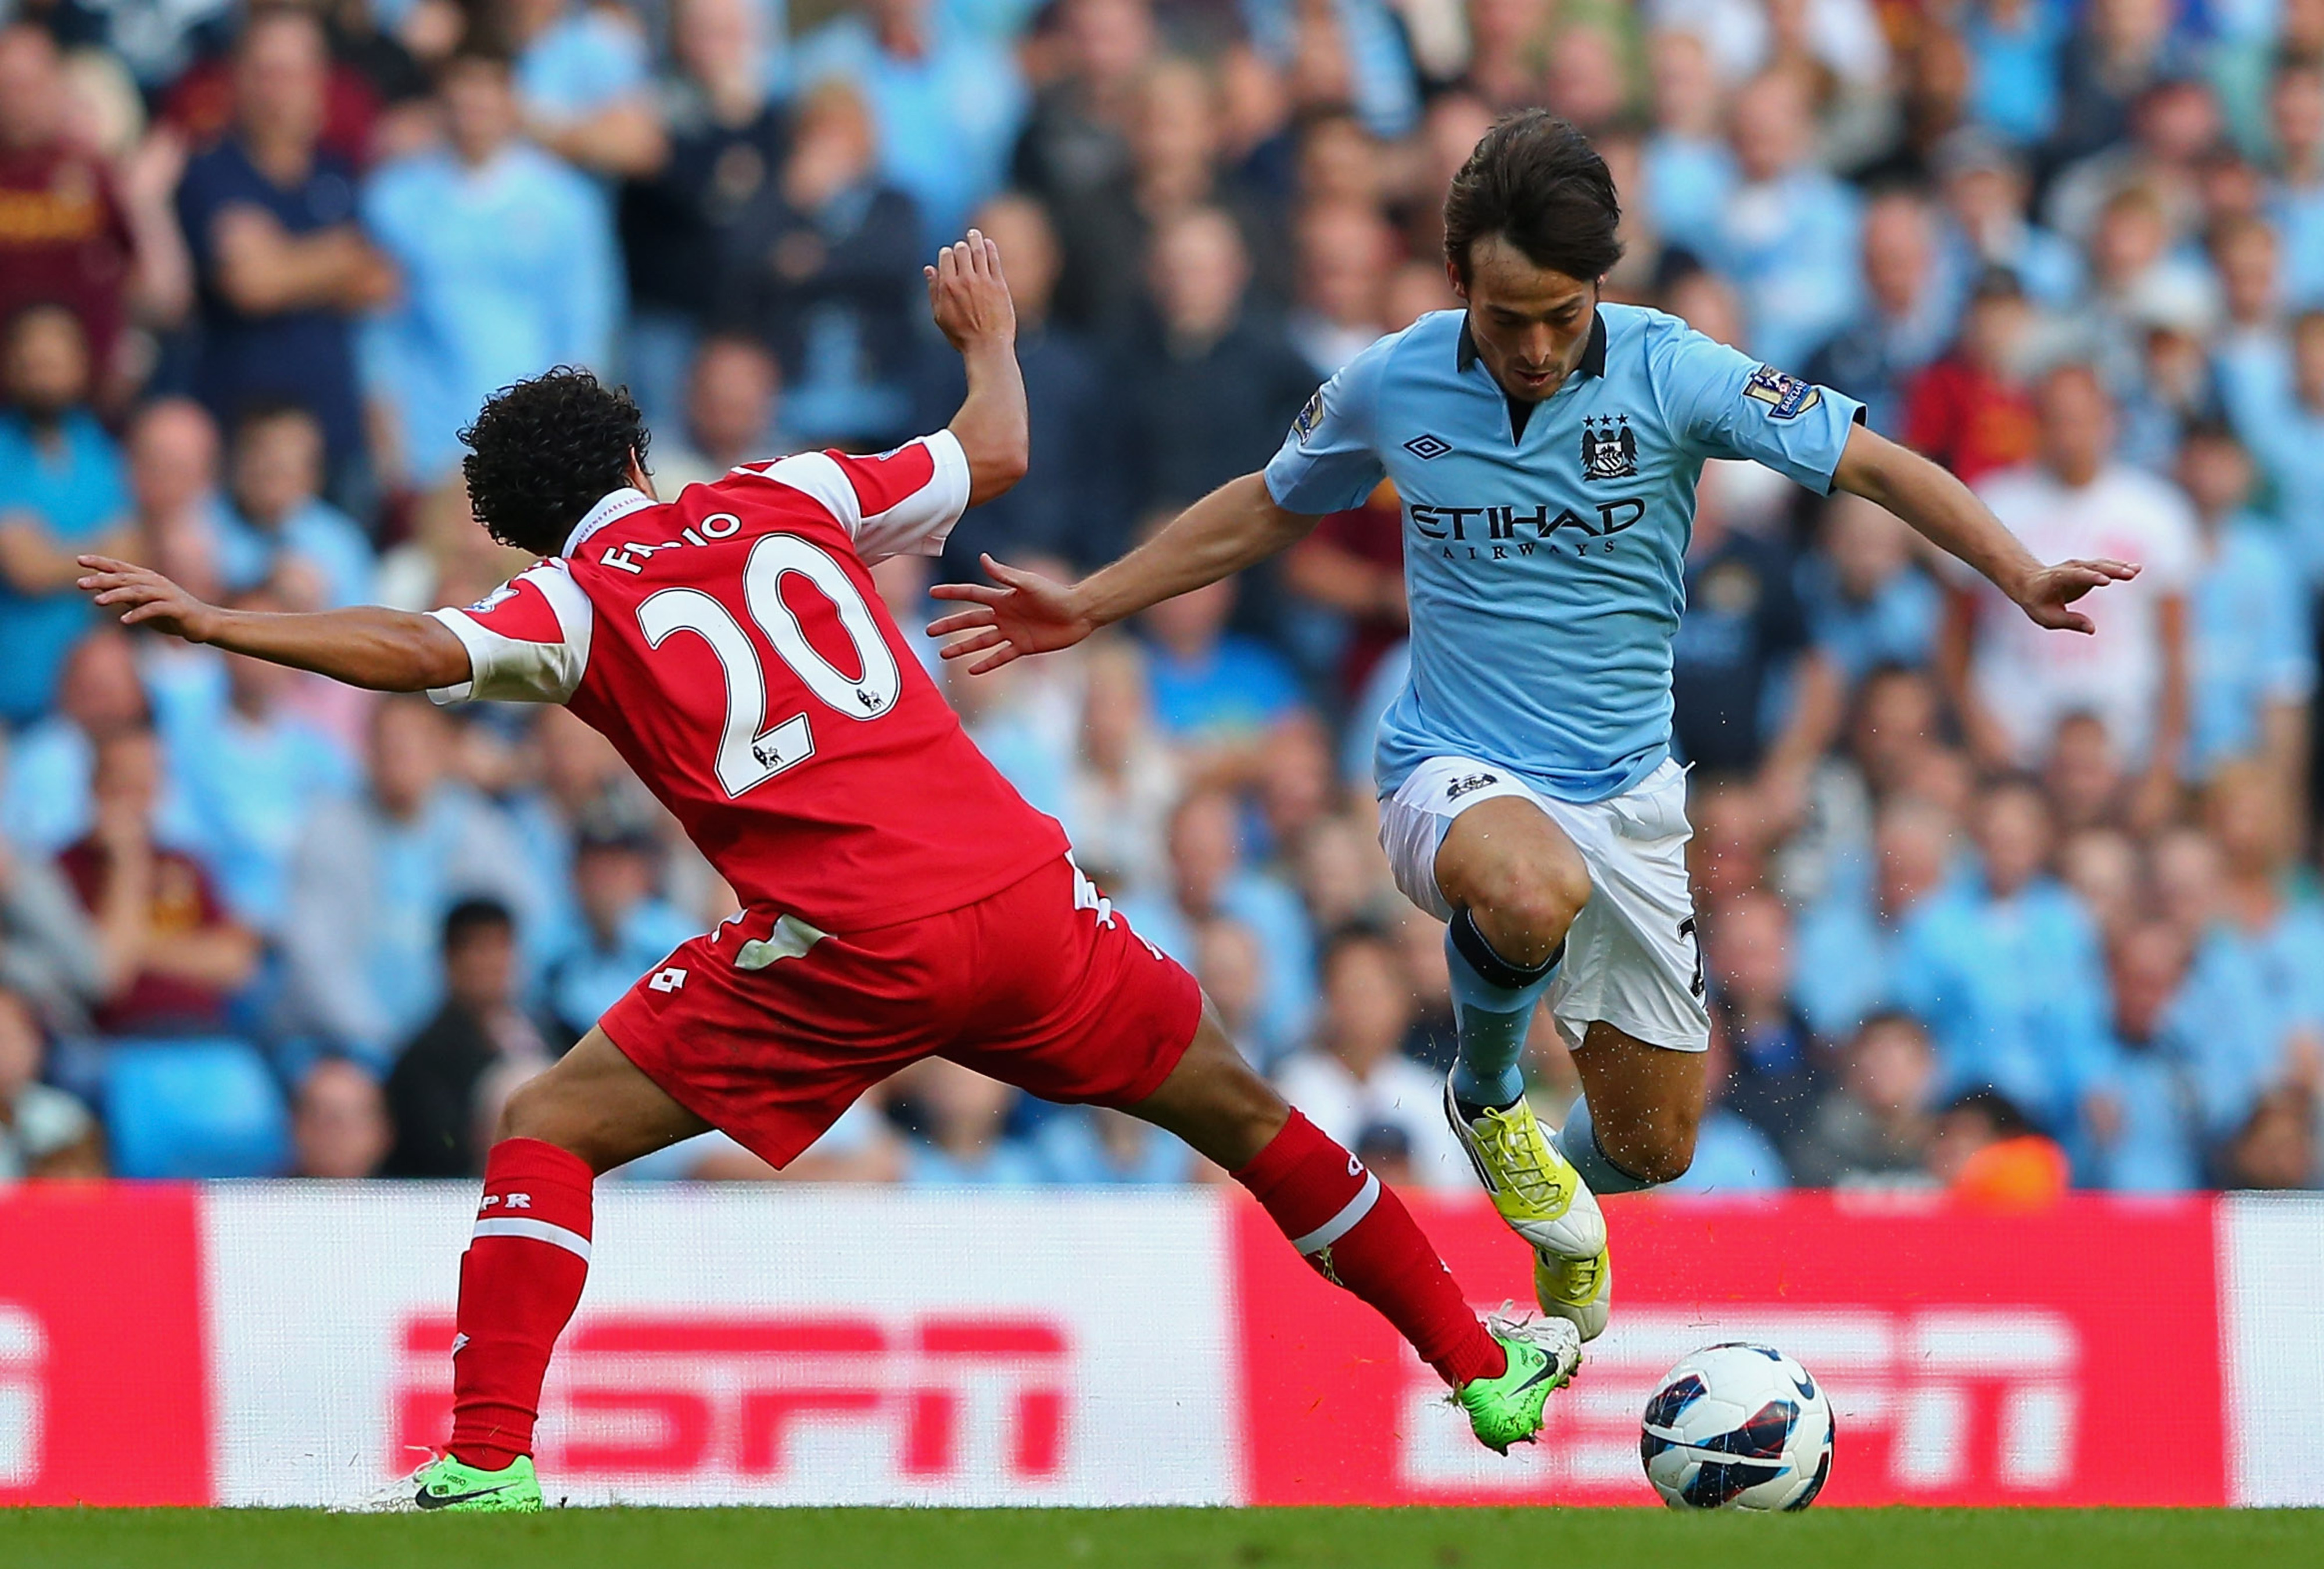 Graceful Silva will be the key against QPR